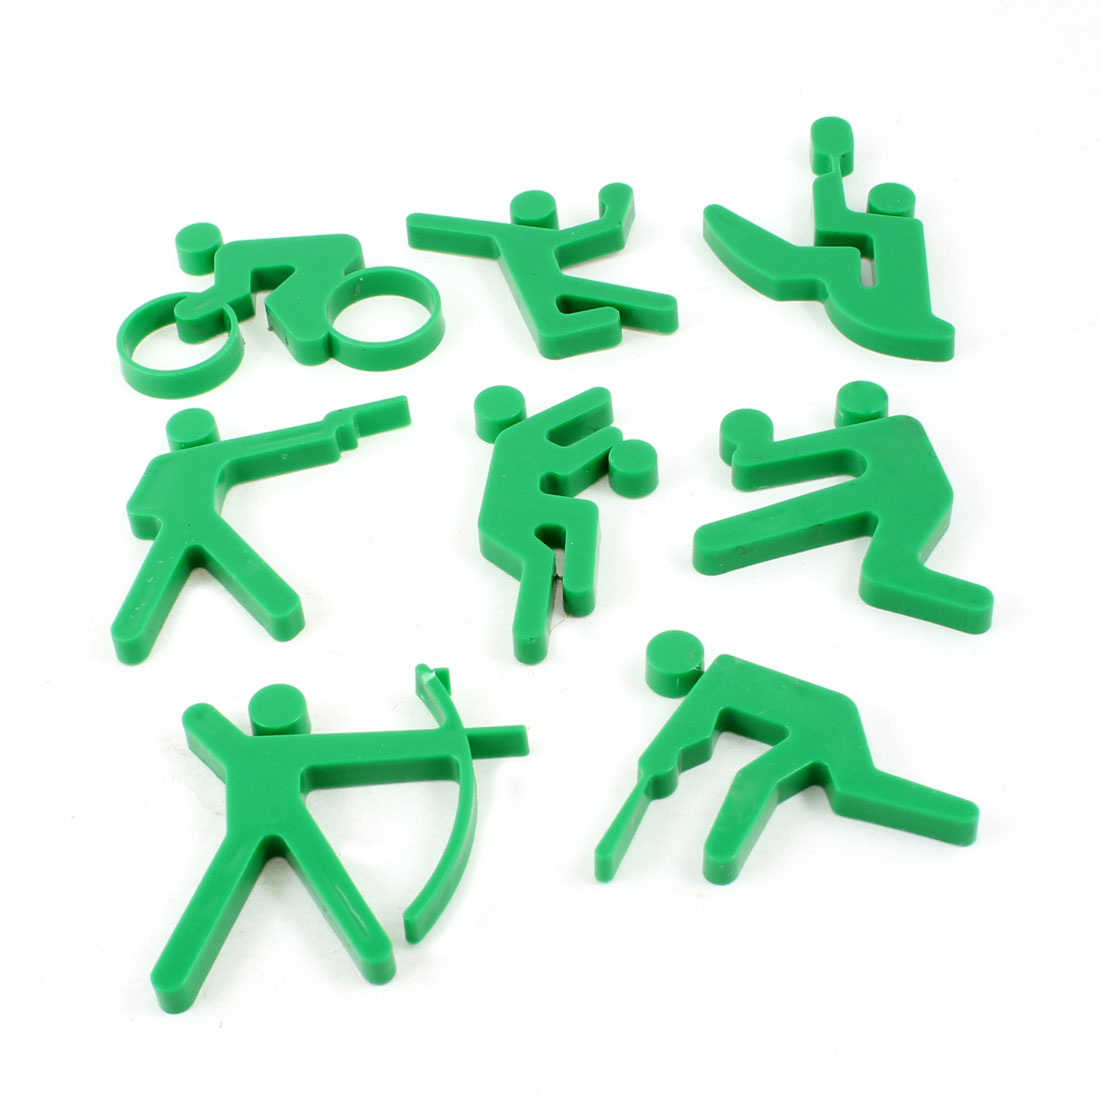 8 in 1 Whiteboard Sport Sign Plastic Fridge Magnet Stickers Green